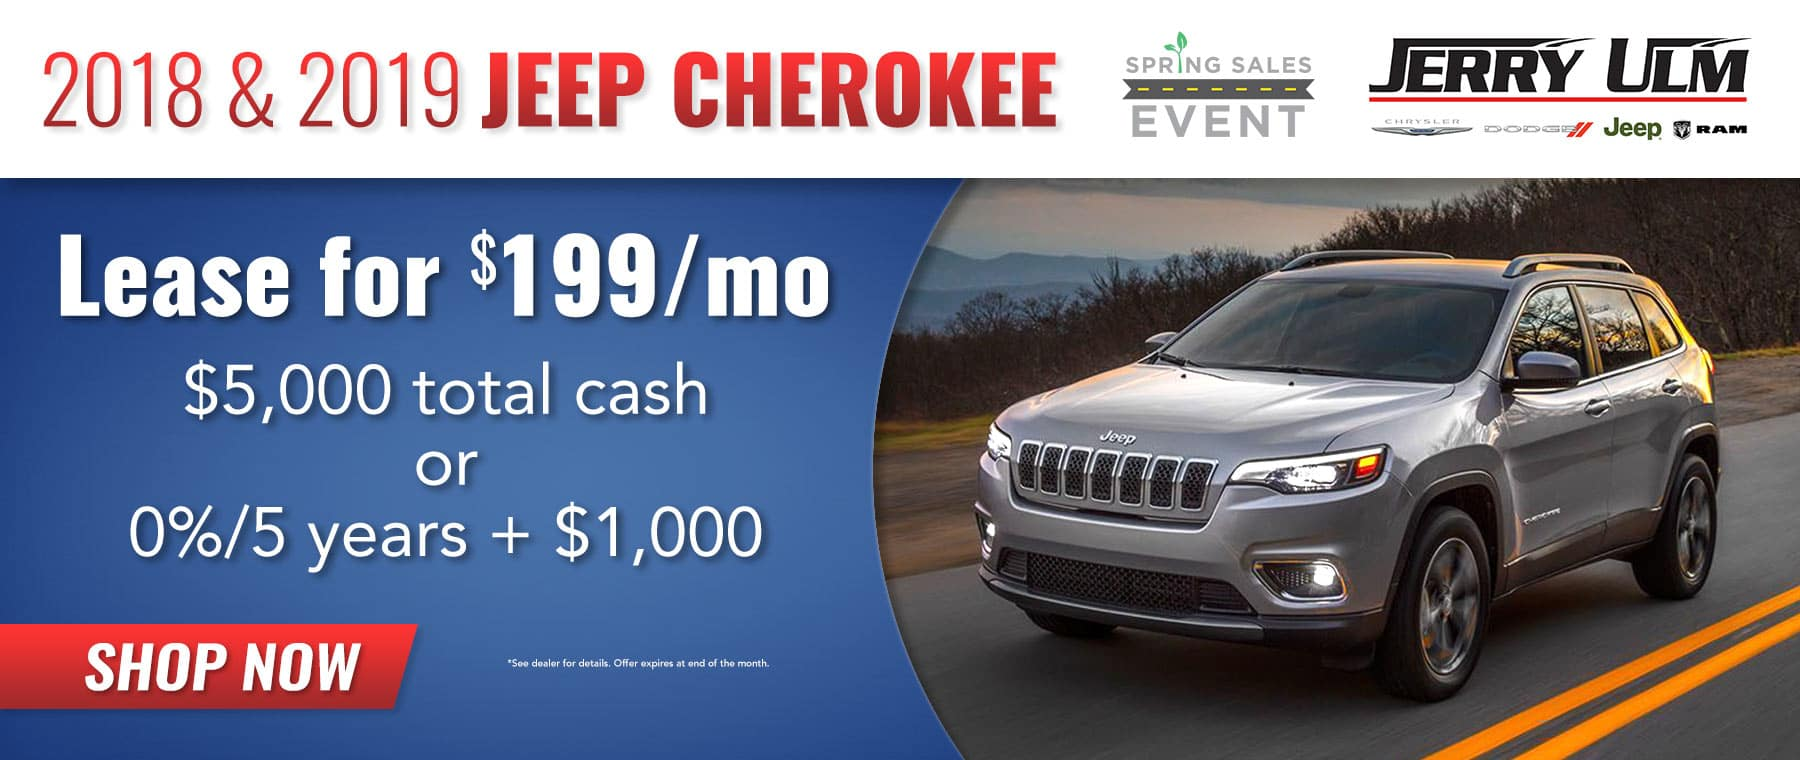 Jeep Cherokee special